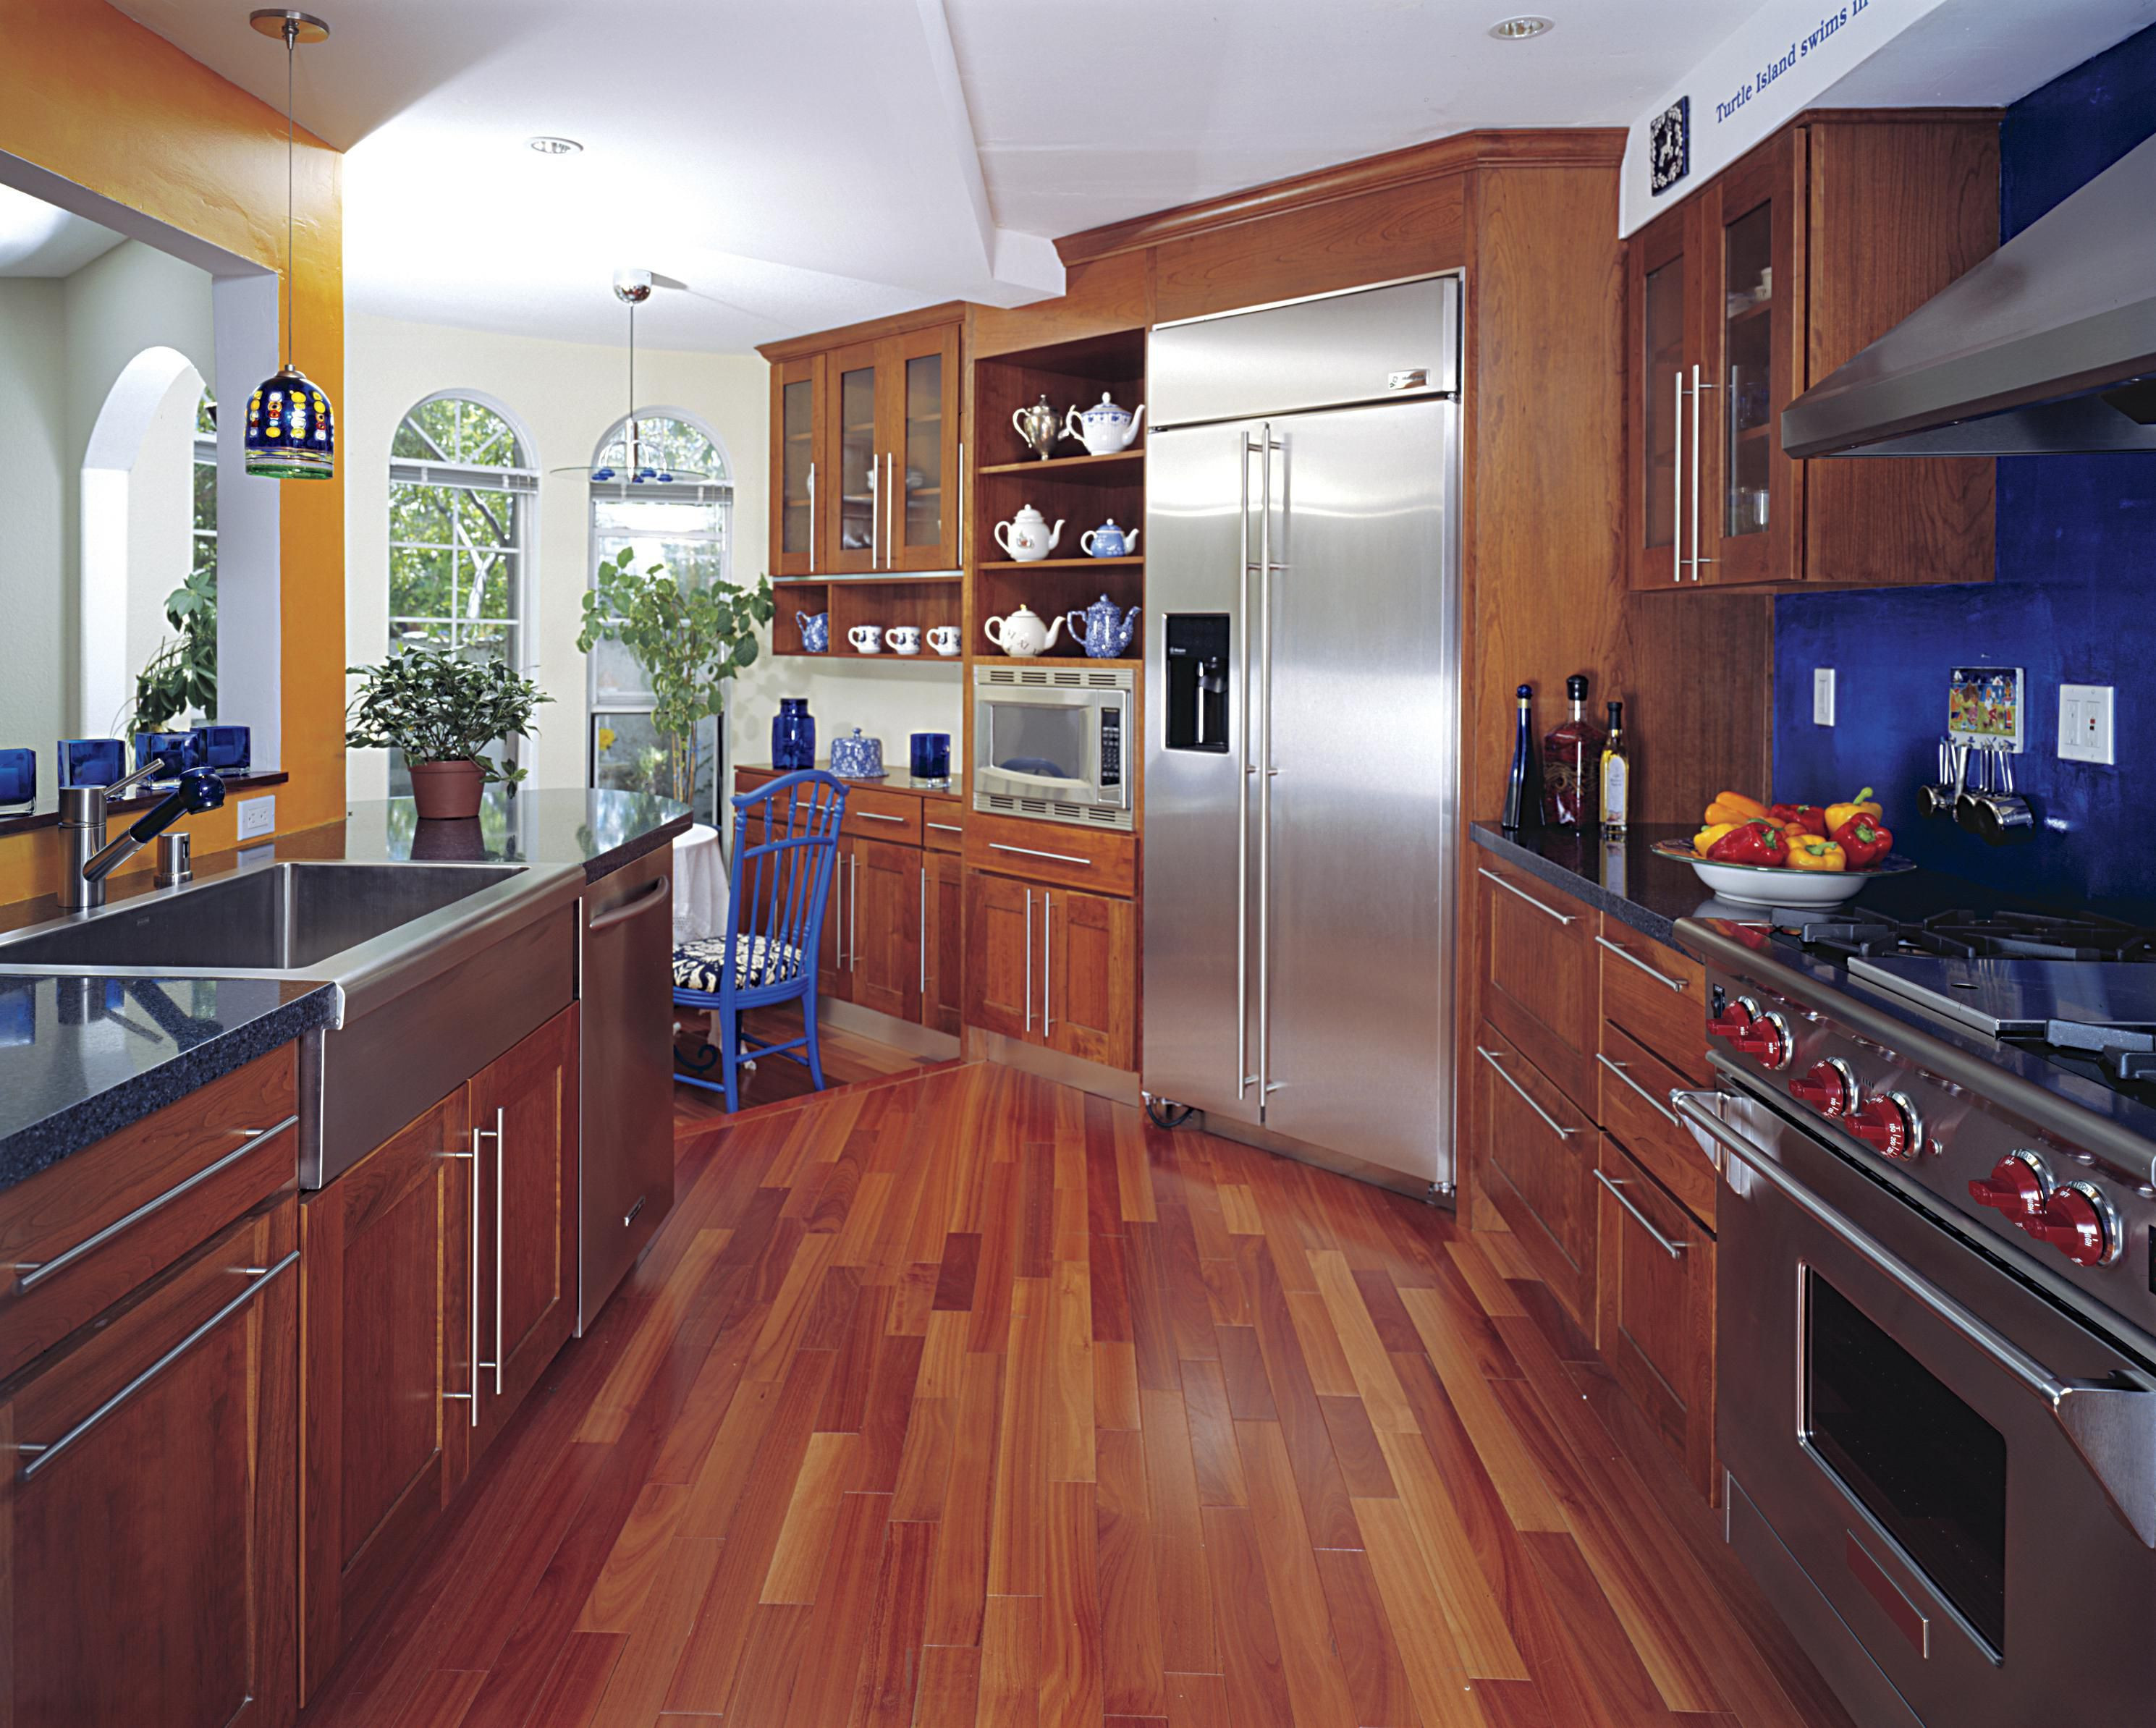 Stonewood Acacia Hardwood Flooring Of Hardwood Floor In A Kitchen is This Allowed with 186828472 56a49f3a5f9b58b7d0d7e142